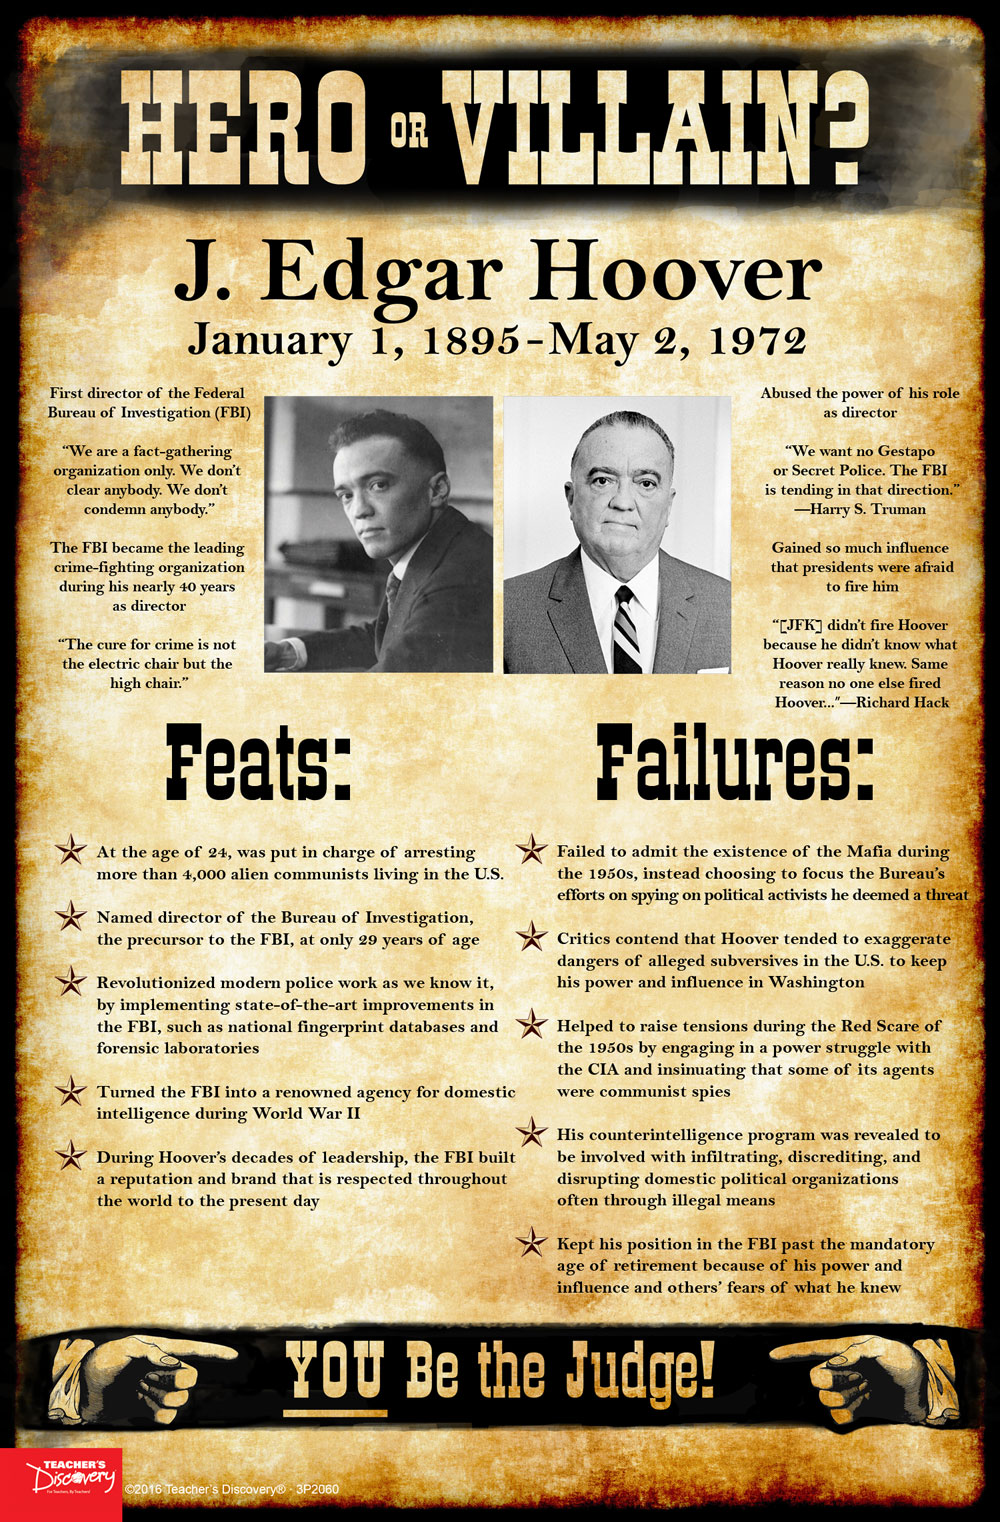 J. Edgar Hoover: Hero or Villain? Mini-Poster